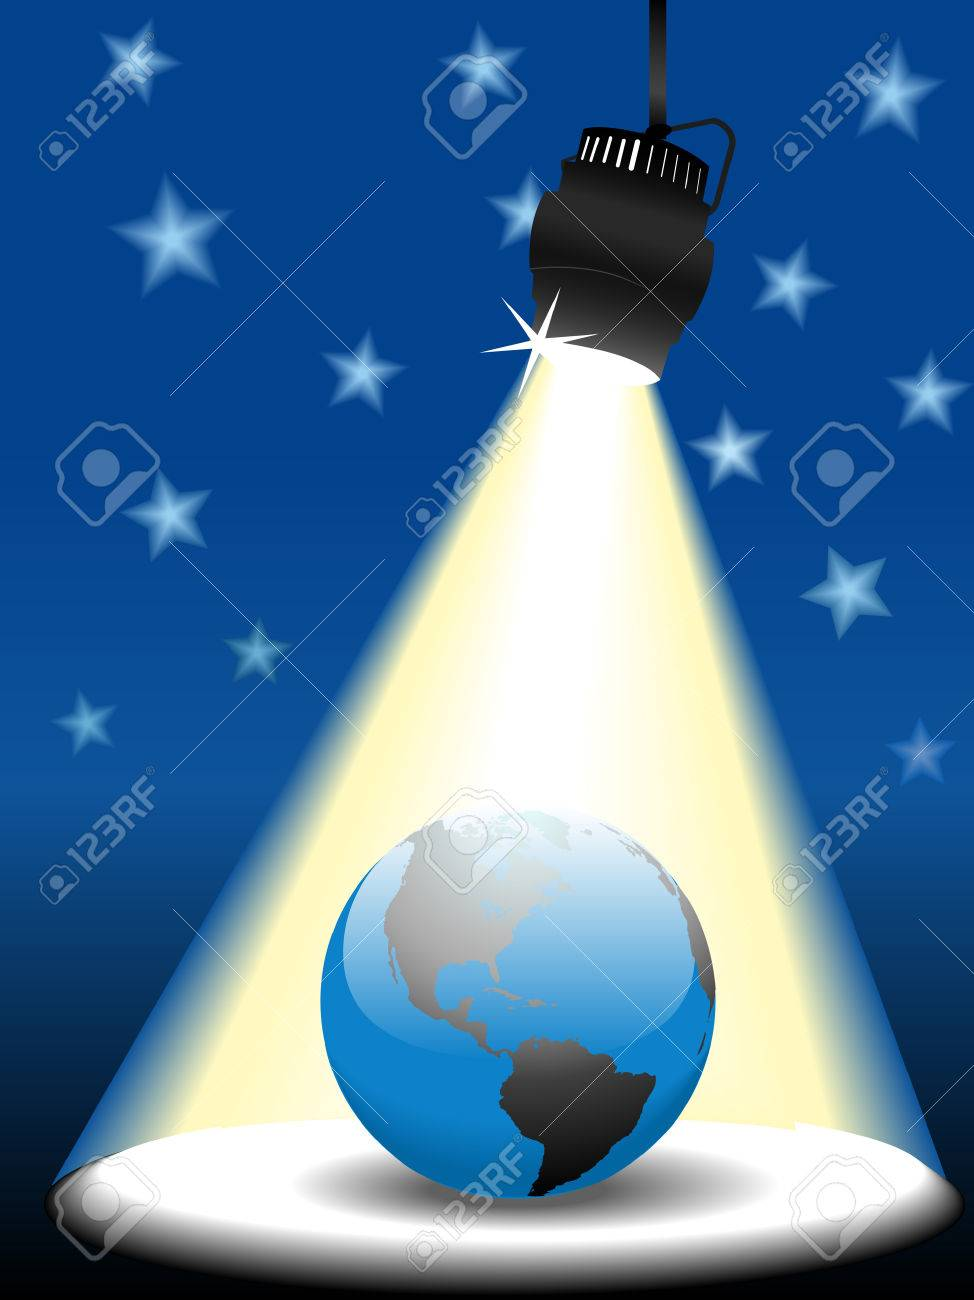 Western Hemisphere of a blue Planet Earth shines in center stage in the spotlight on a sky universe with stars. Stock Vector - 5783225